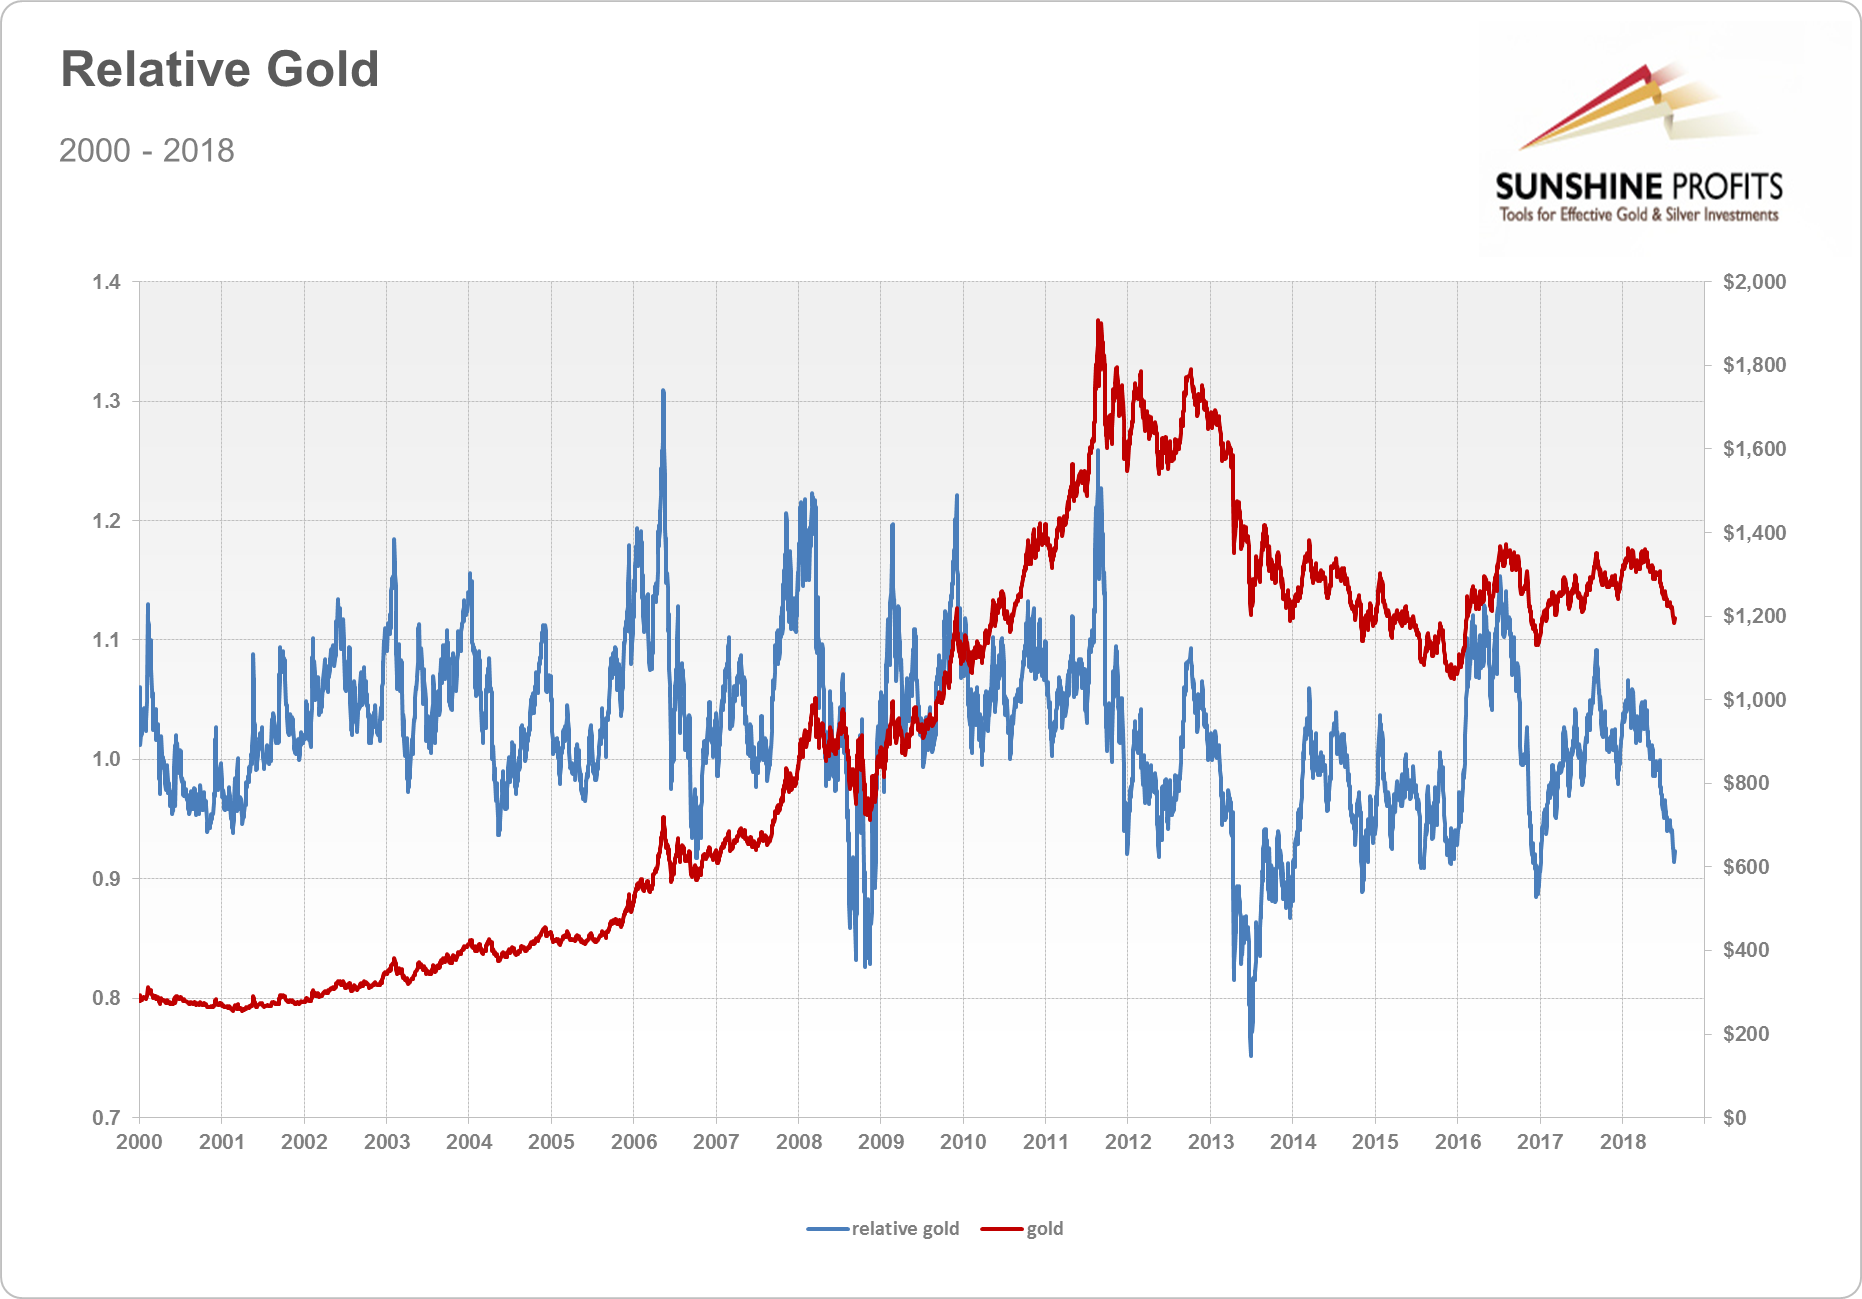 Relative gold